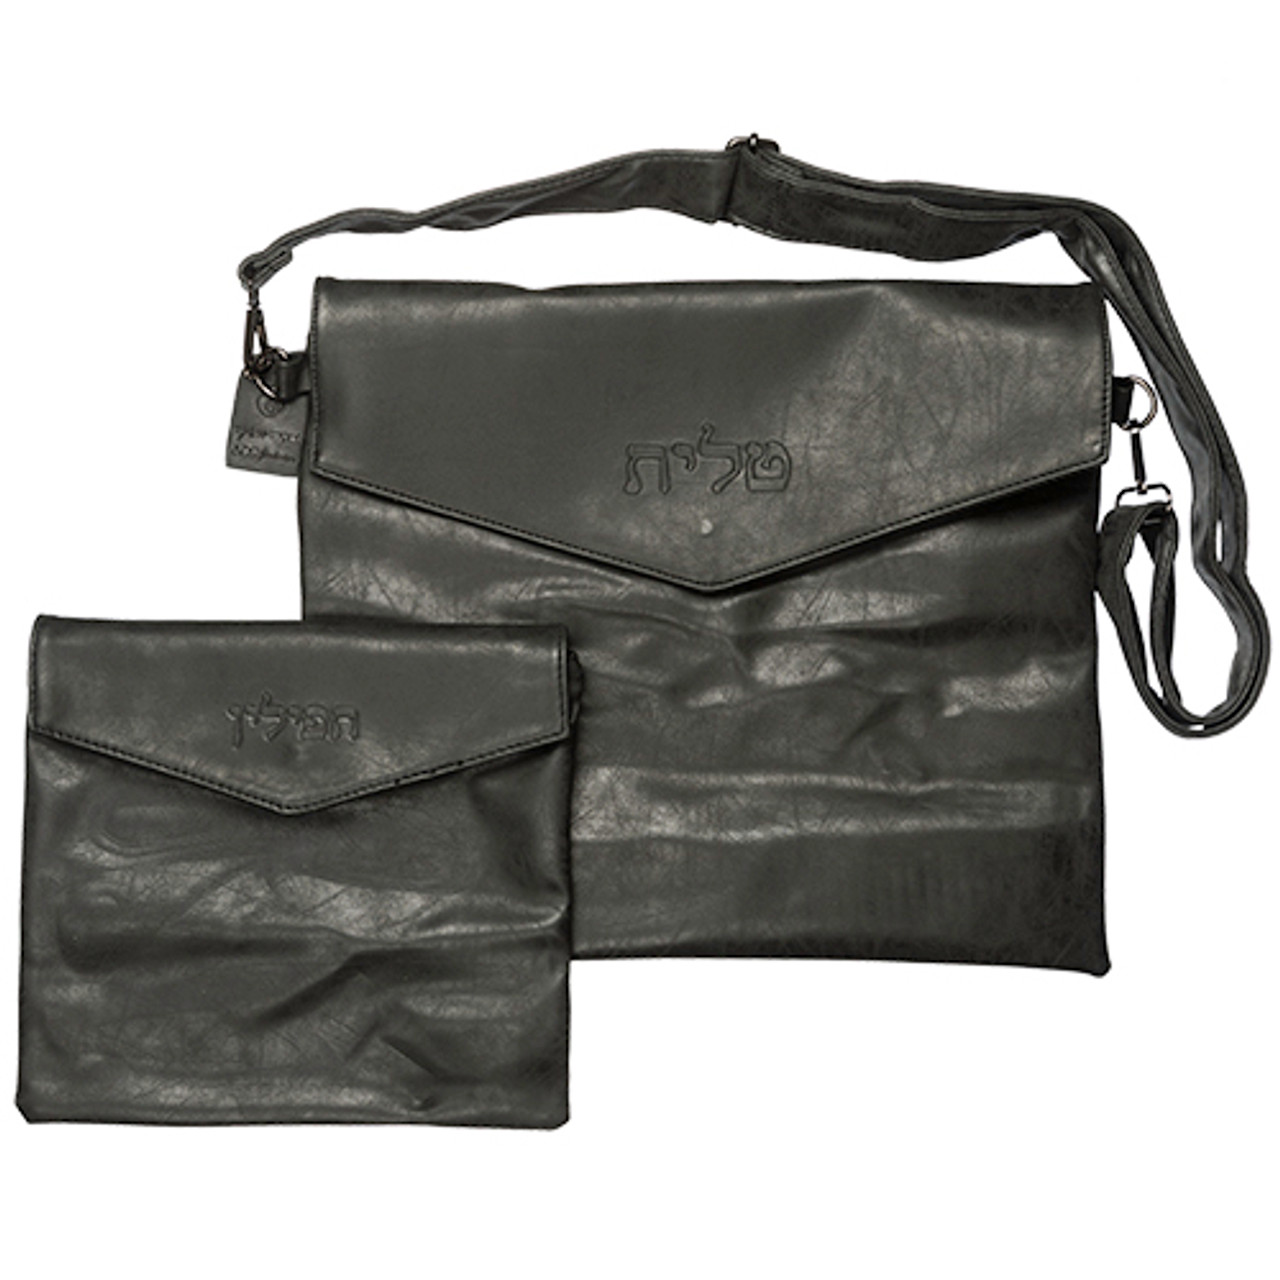 Faux Leather Tallit & Tefillin Bag Set with Strap